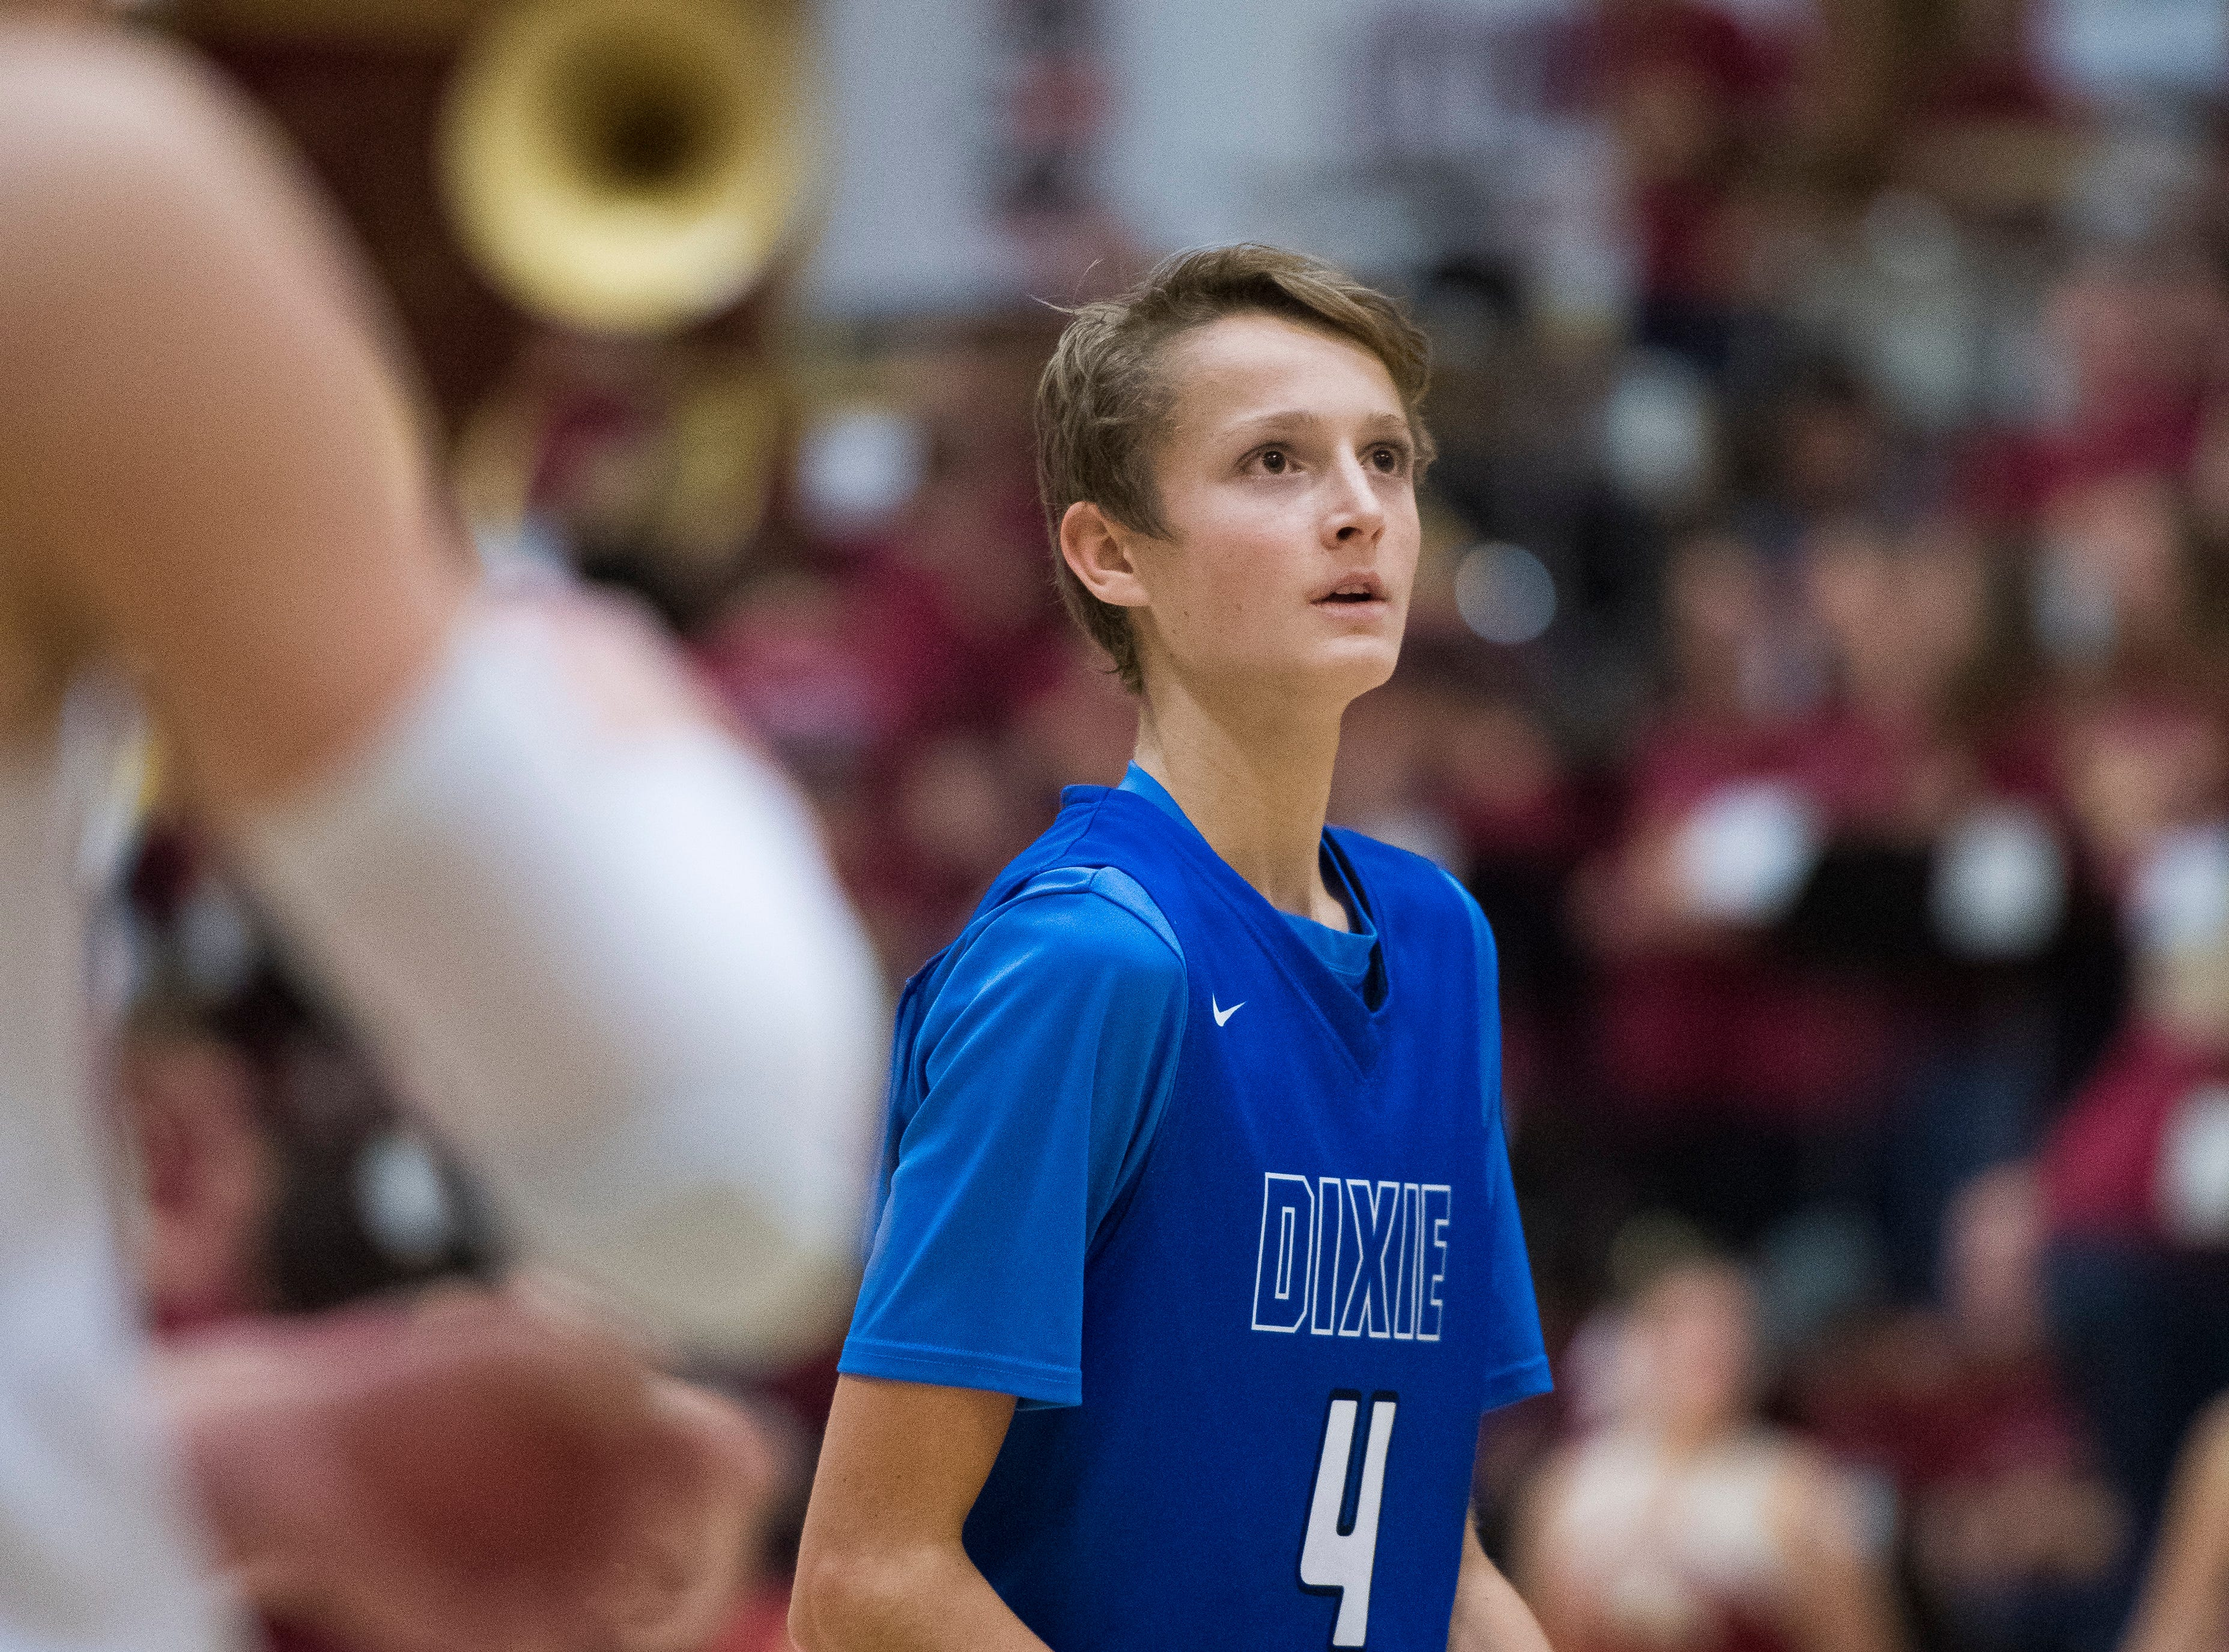 Dixie High School sophomore Isaac Finlinson (4) sinks a free-throw against Cedar High School at CHS Wednesday, December 19, 2018. Trading the lead all game, Dixie won, 49-45.